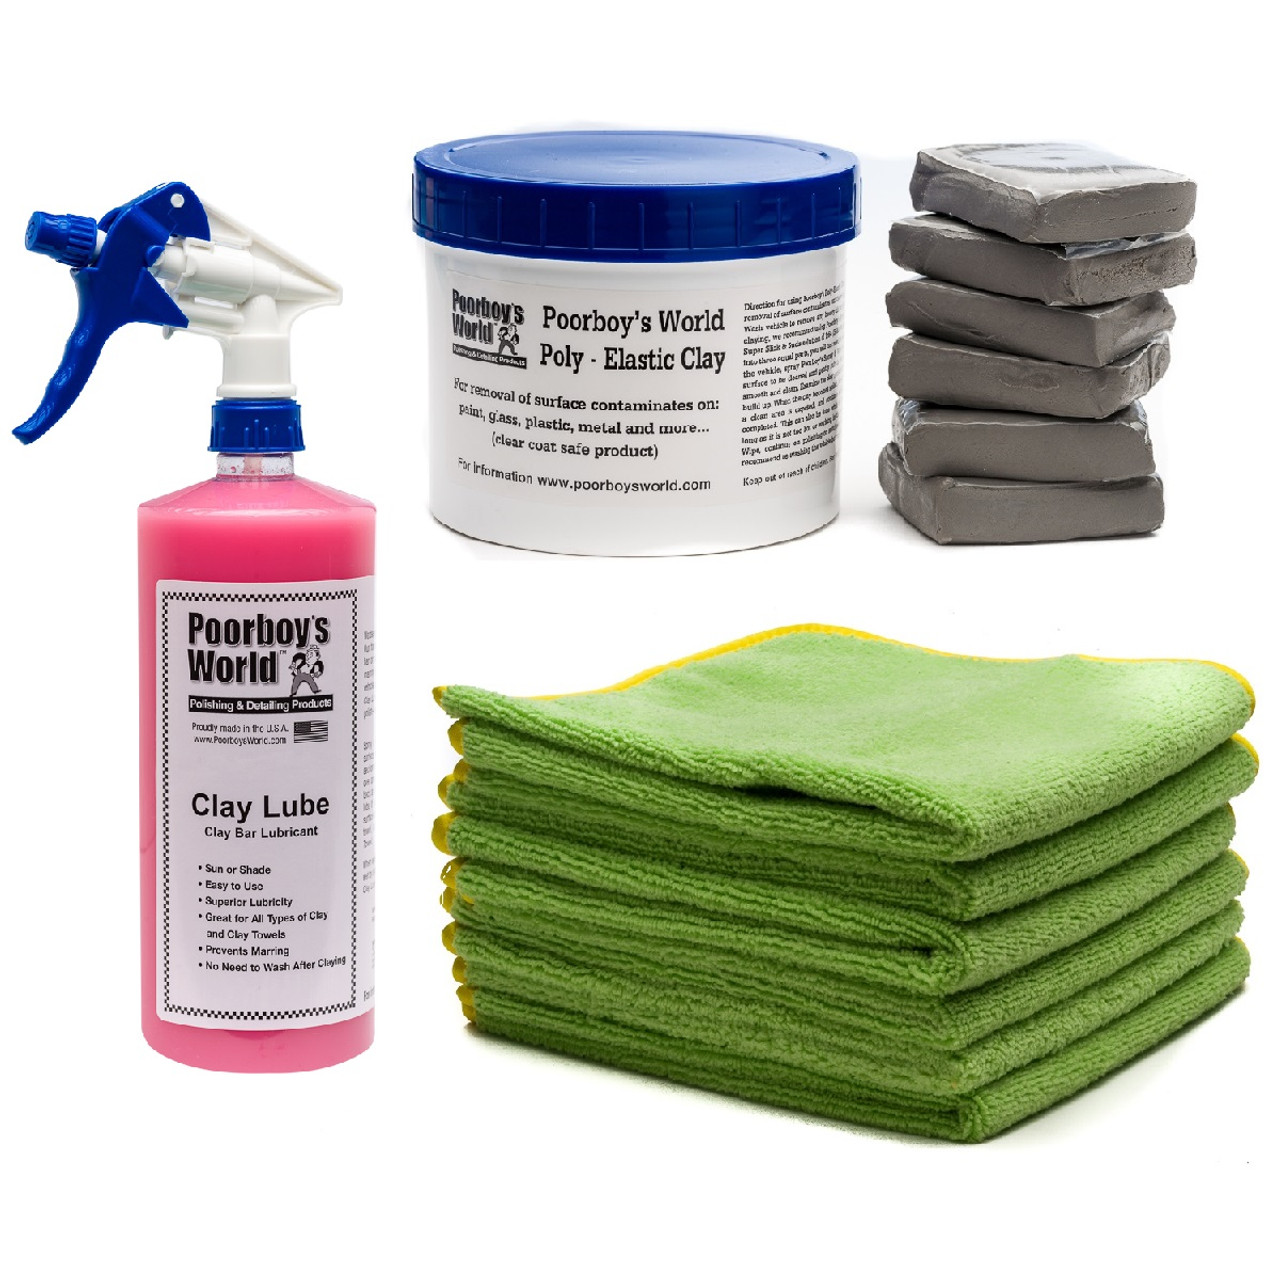 Super Deluxe Clay Bar Kit - 6 Clay Bars, 32oz Clay Lube, 6 DMT Microfiber Towels